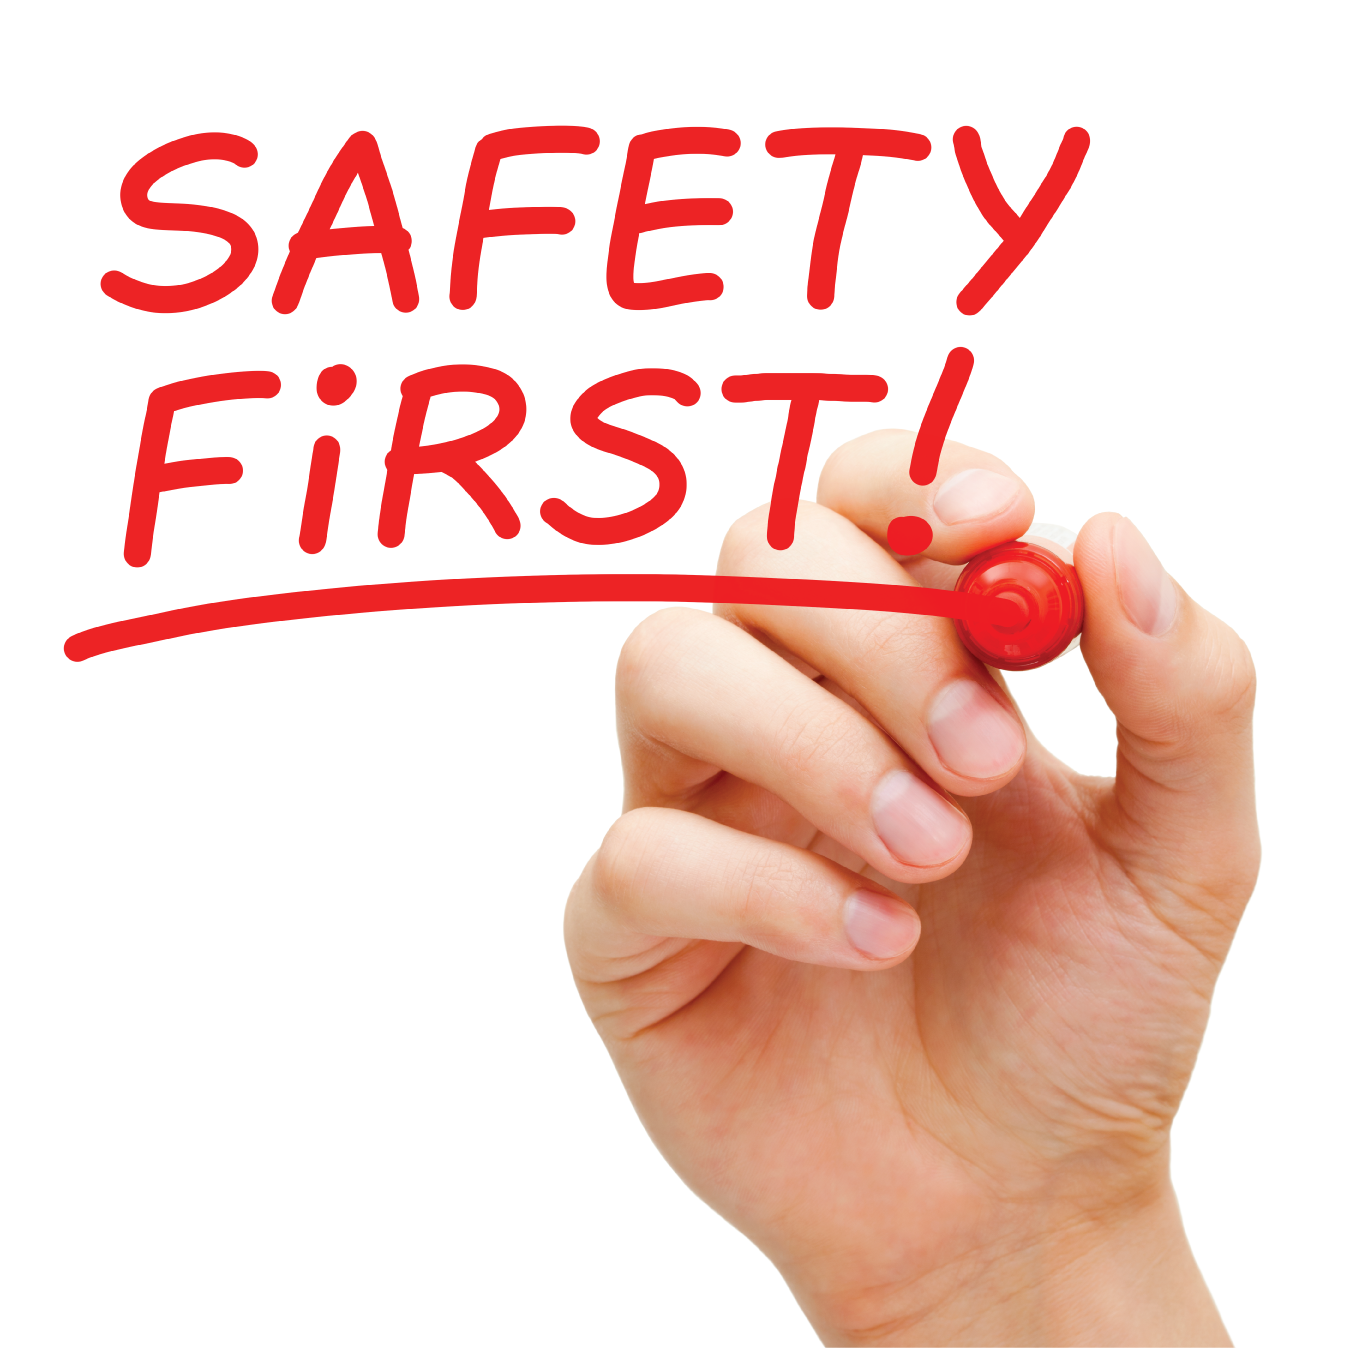 Download Free High-quality Safety First Png Transparent Images image #18140